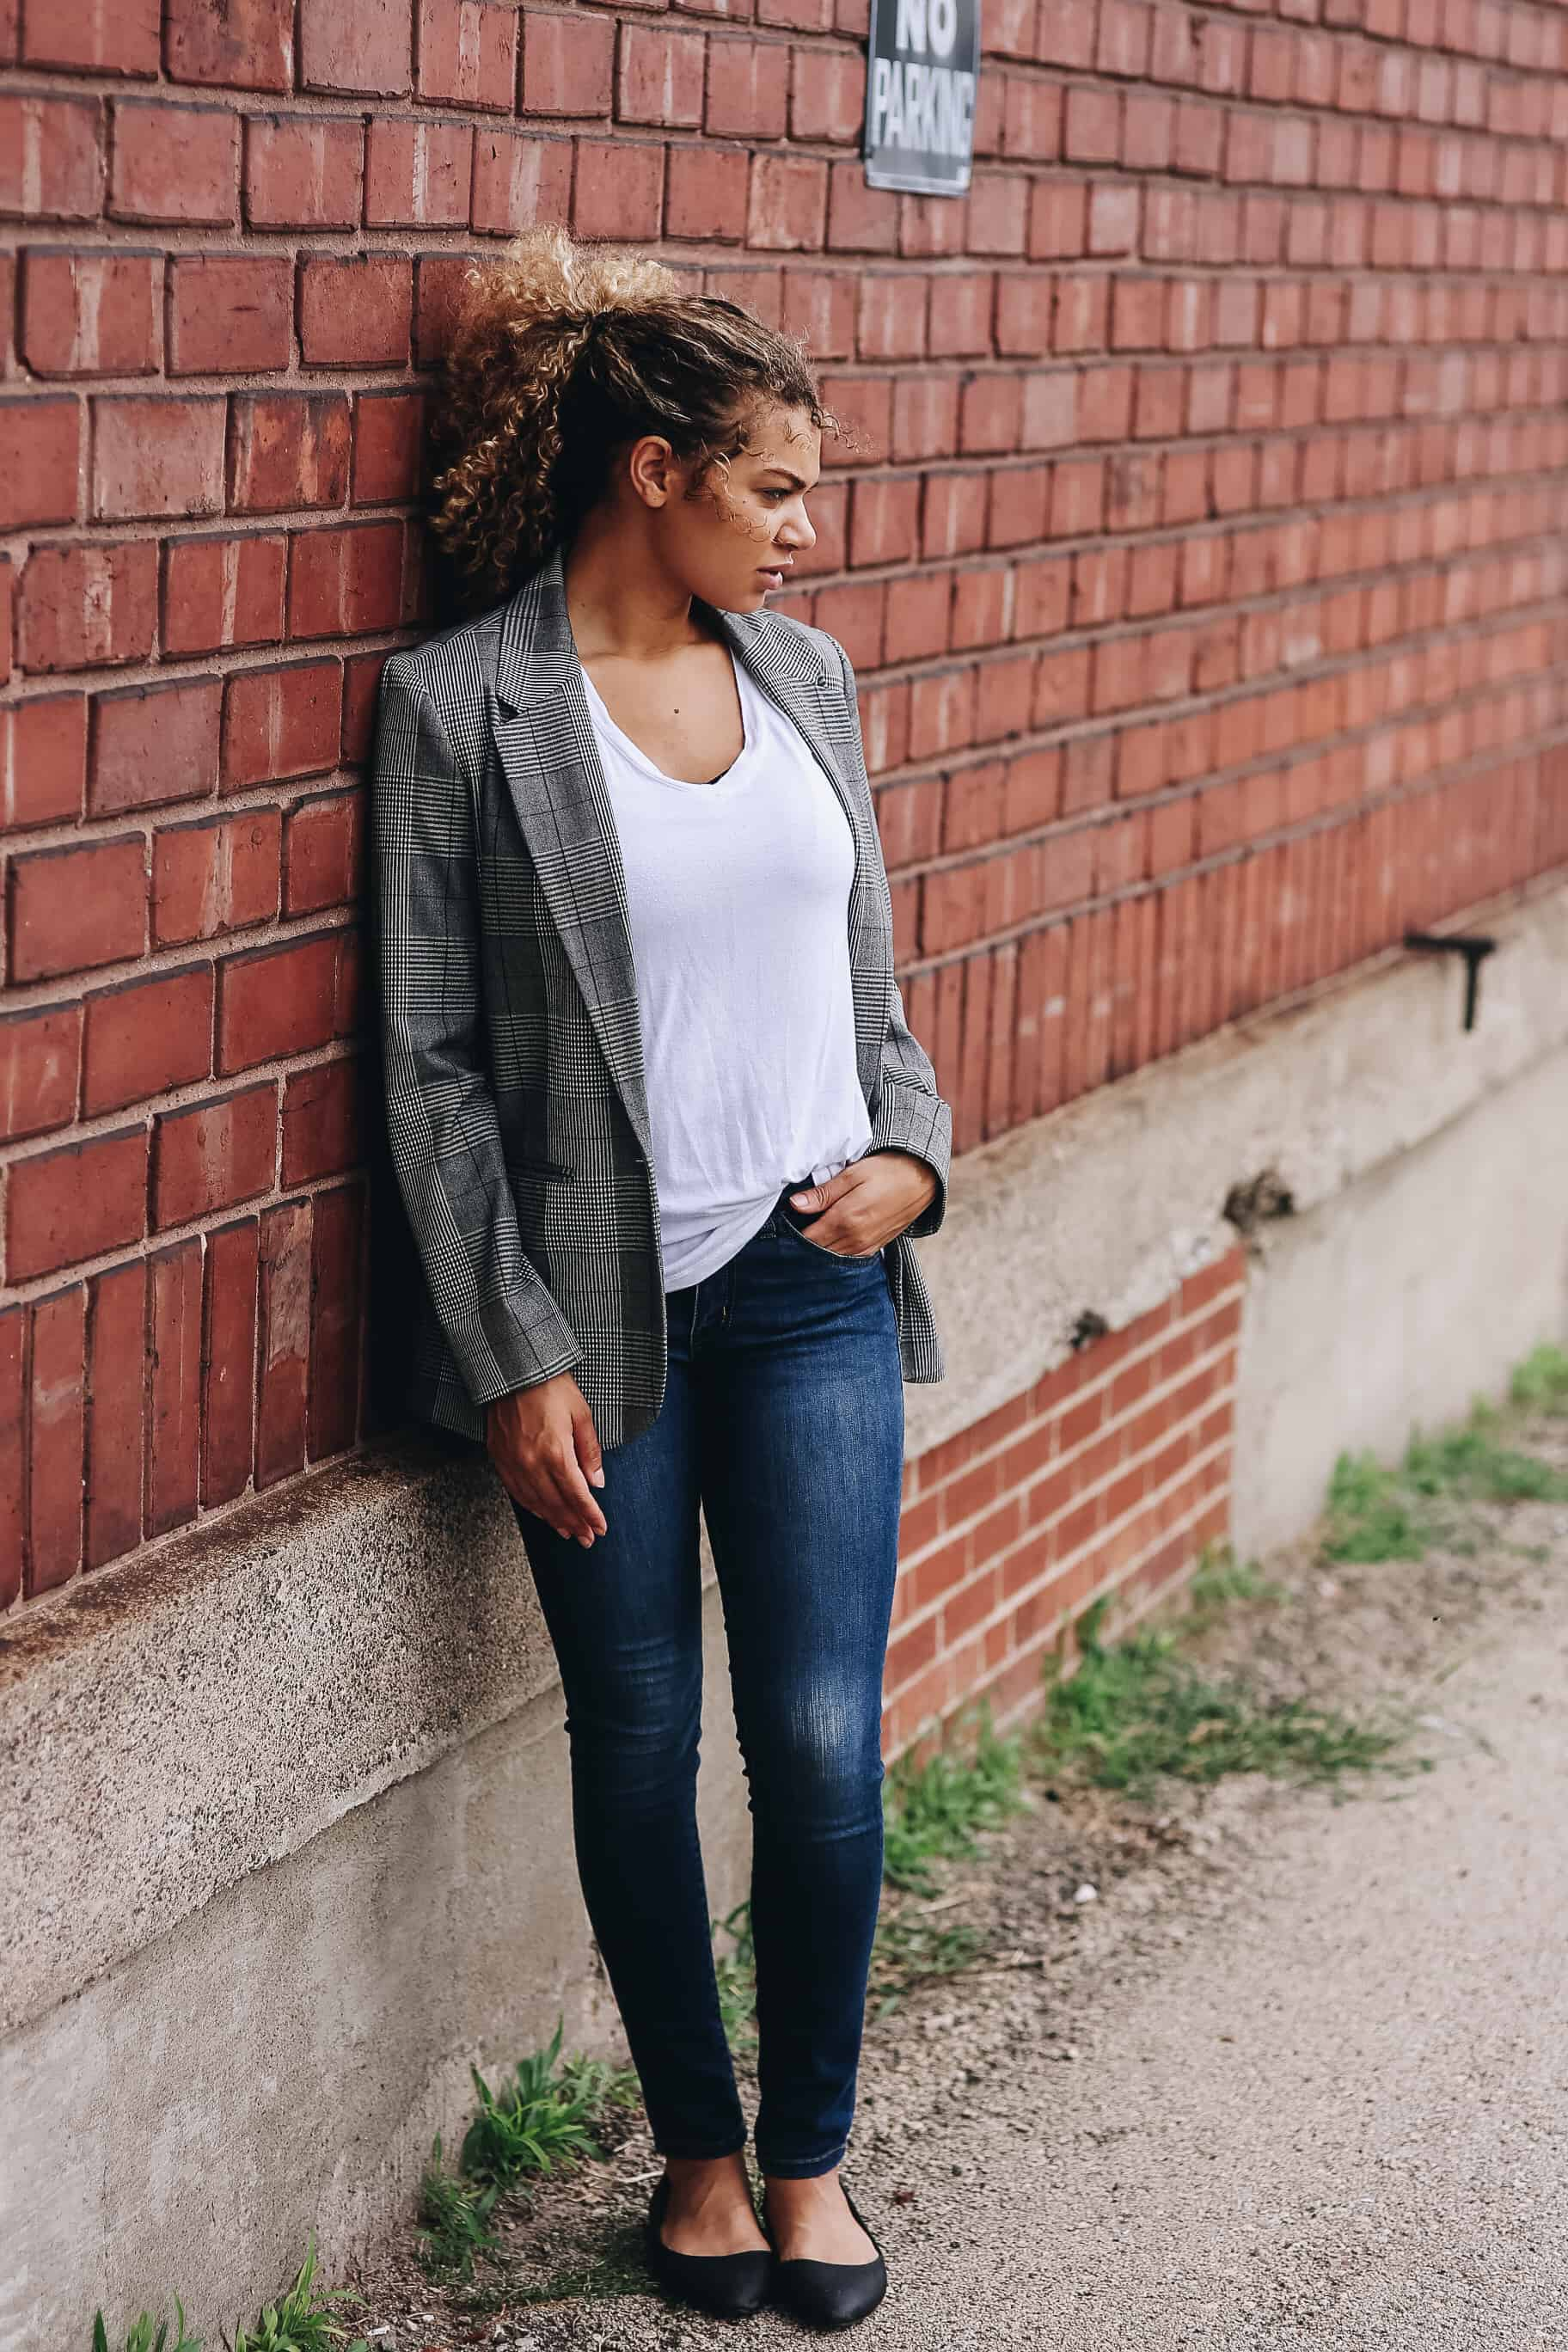 367d684115d How to Elevate a Simple Tee and Jeans Outfit - My Chic Obsession